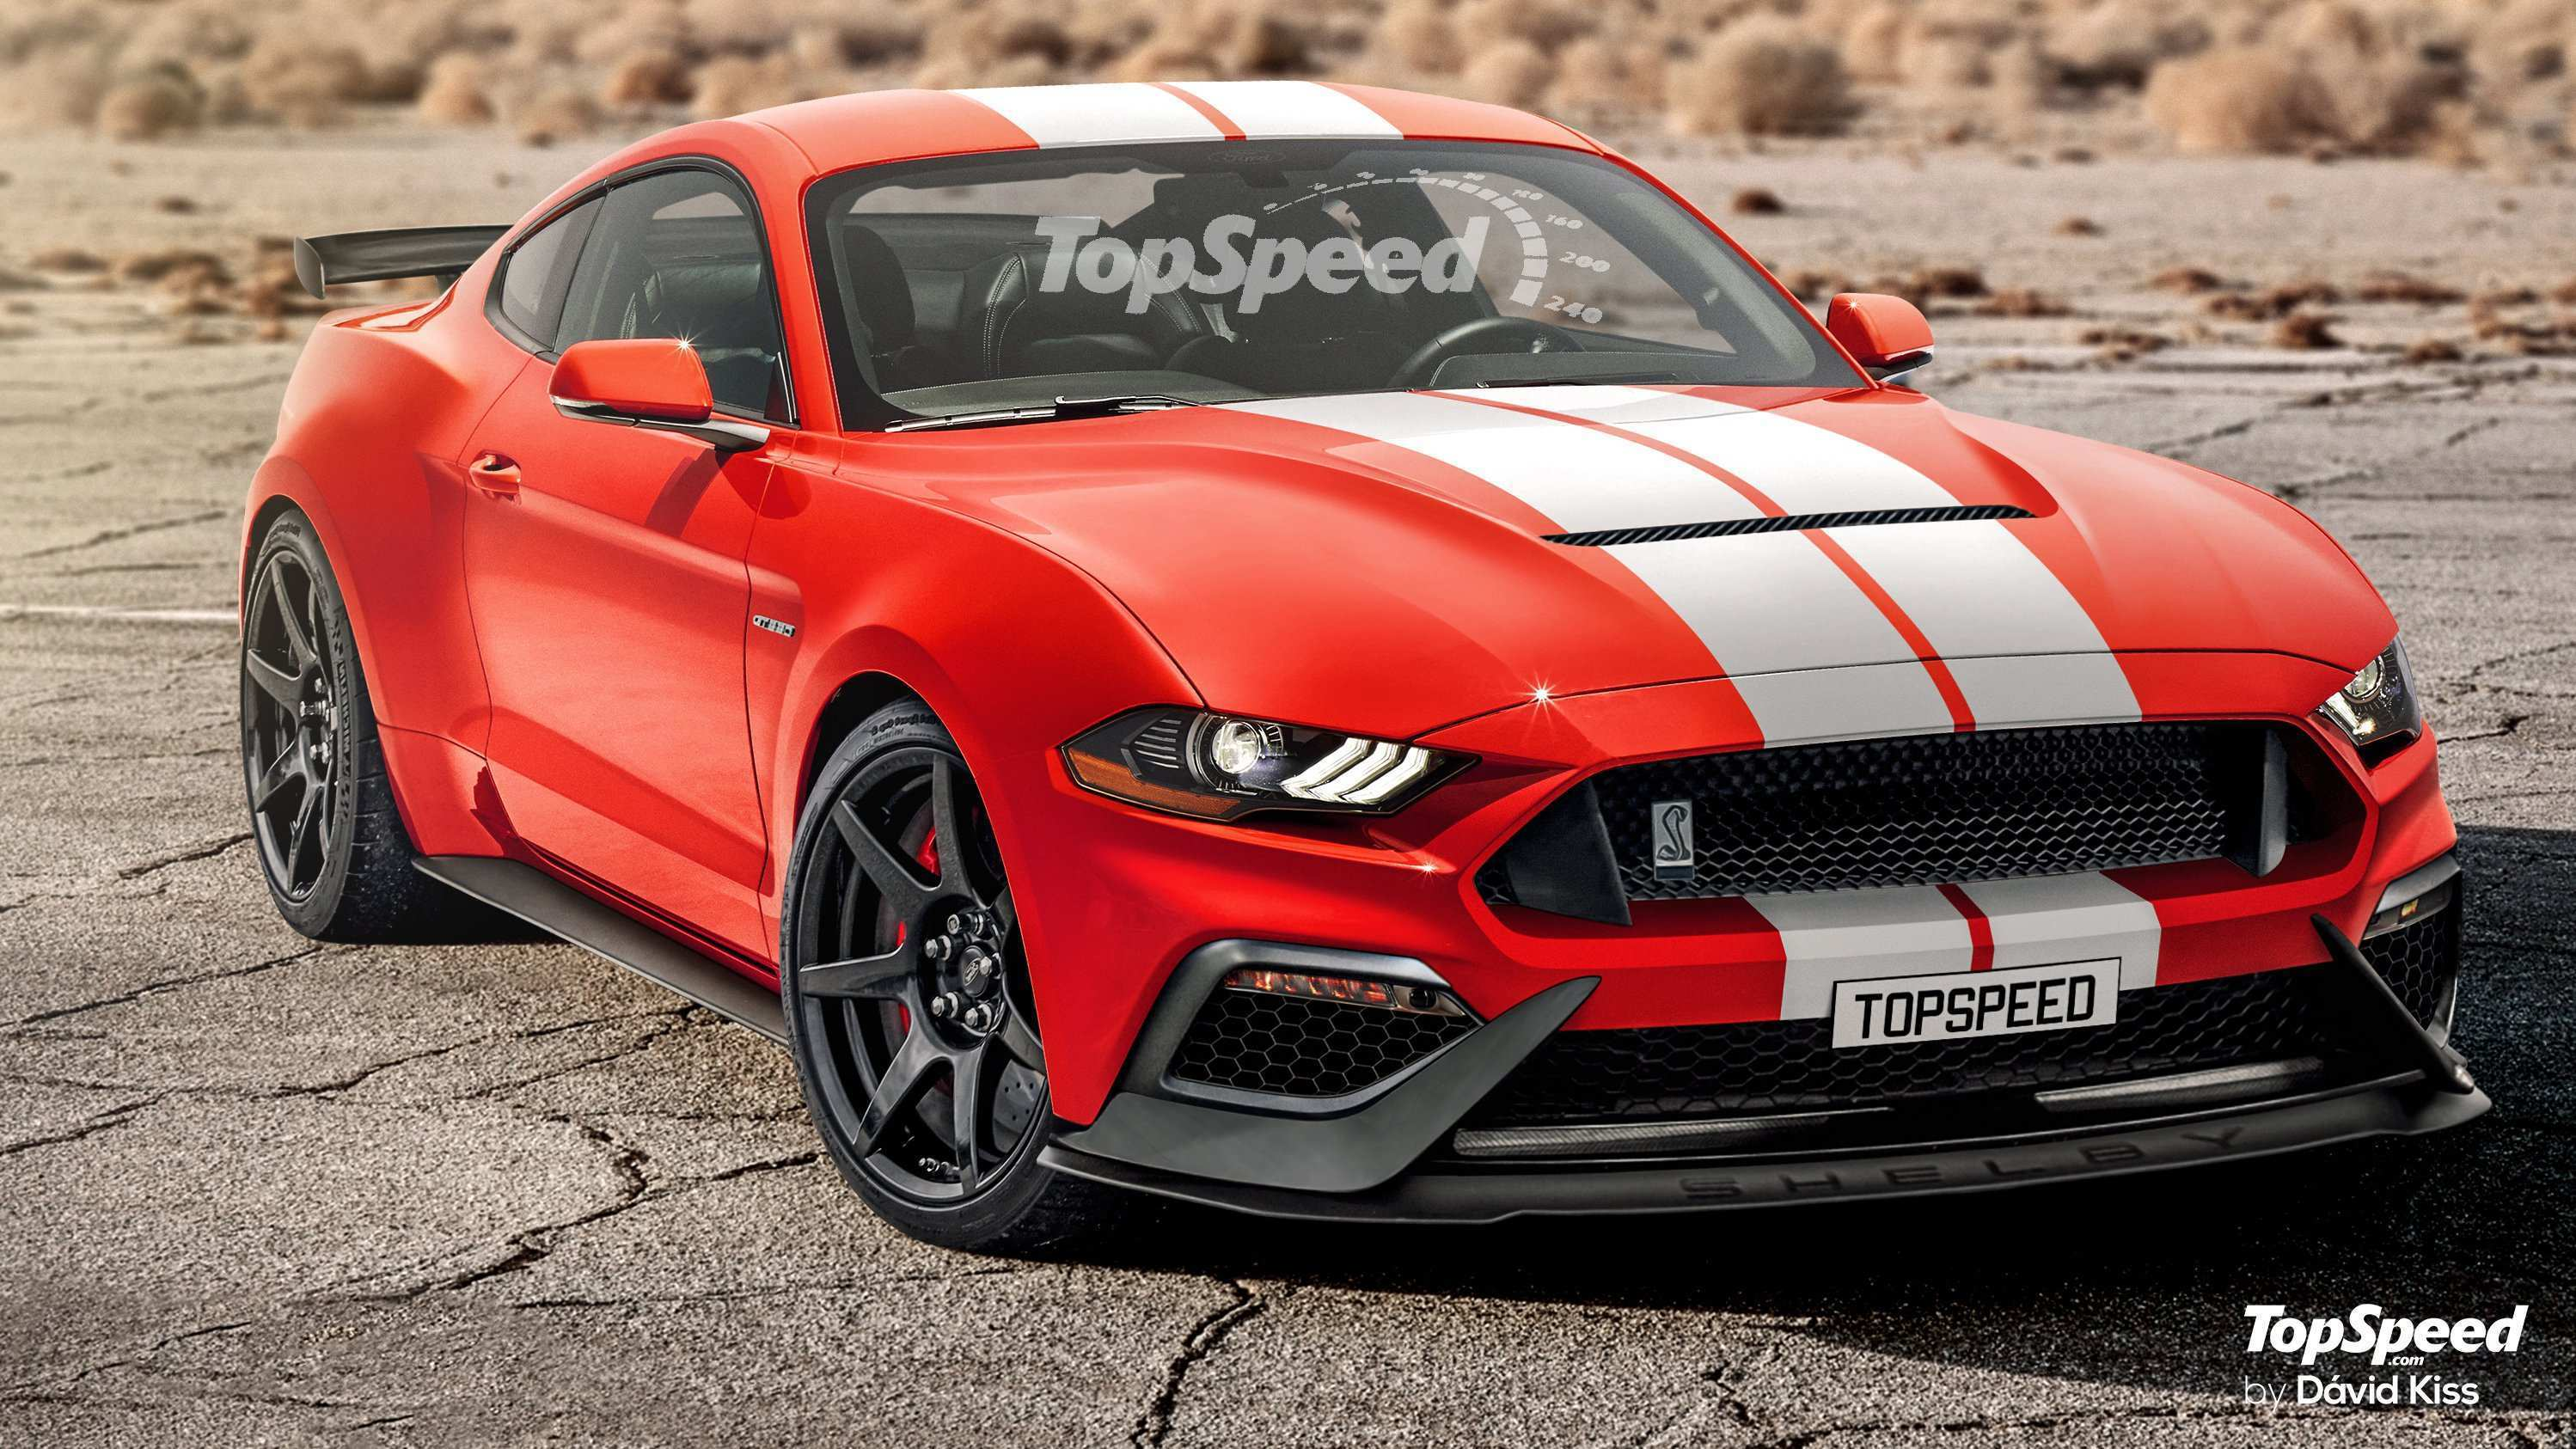 84 Concept of 2019 Ford Gt Mustang Images by 2019 Ford Gt Mustang